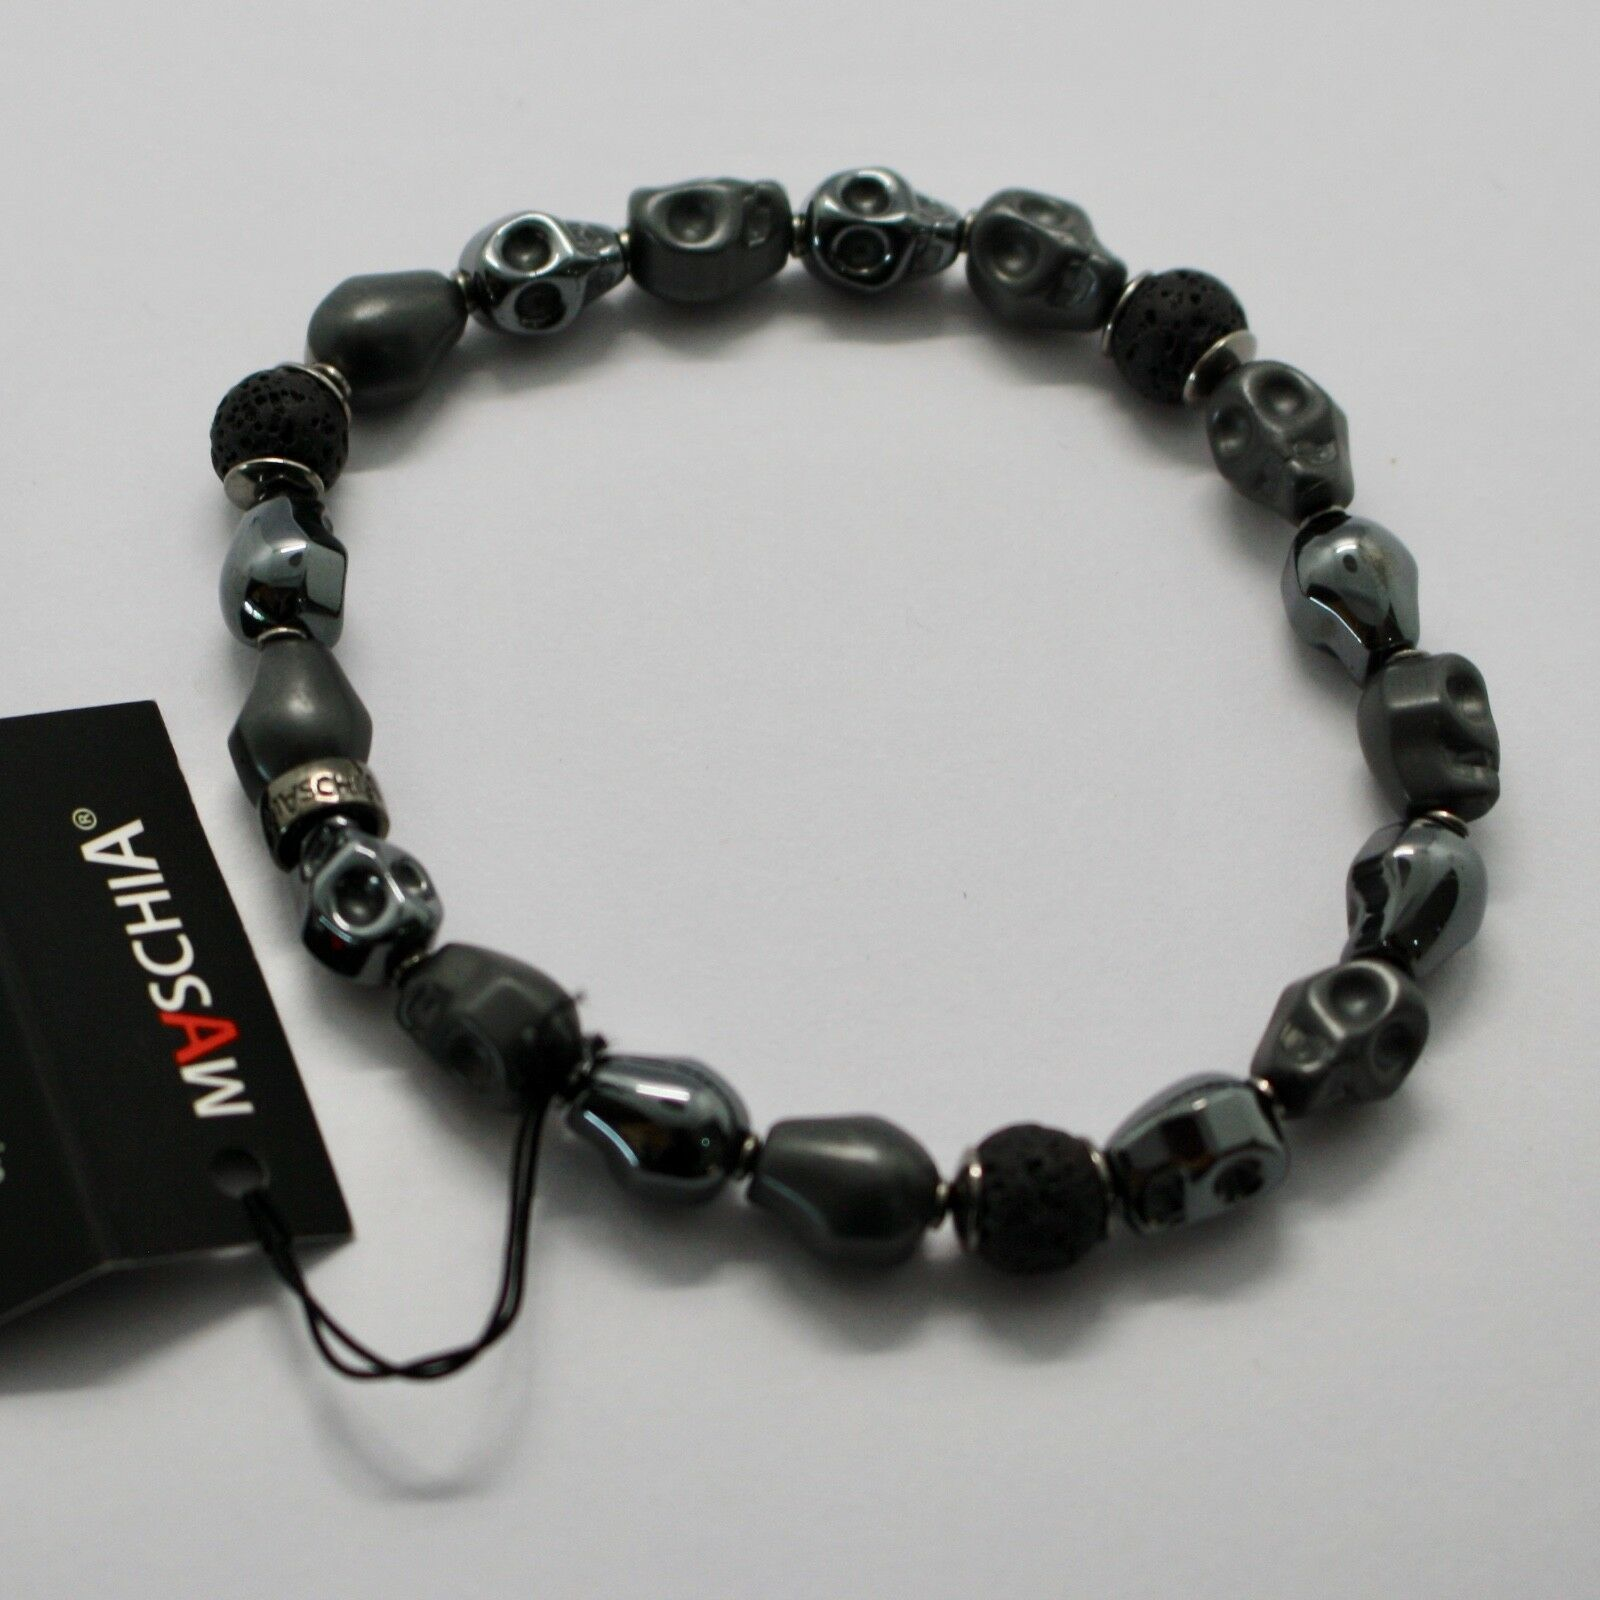 Silver Bracelet 925 Hematite to Skull and Lava BSK-2 Made in Italy by Maschia